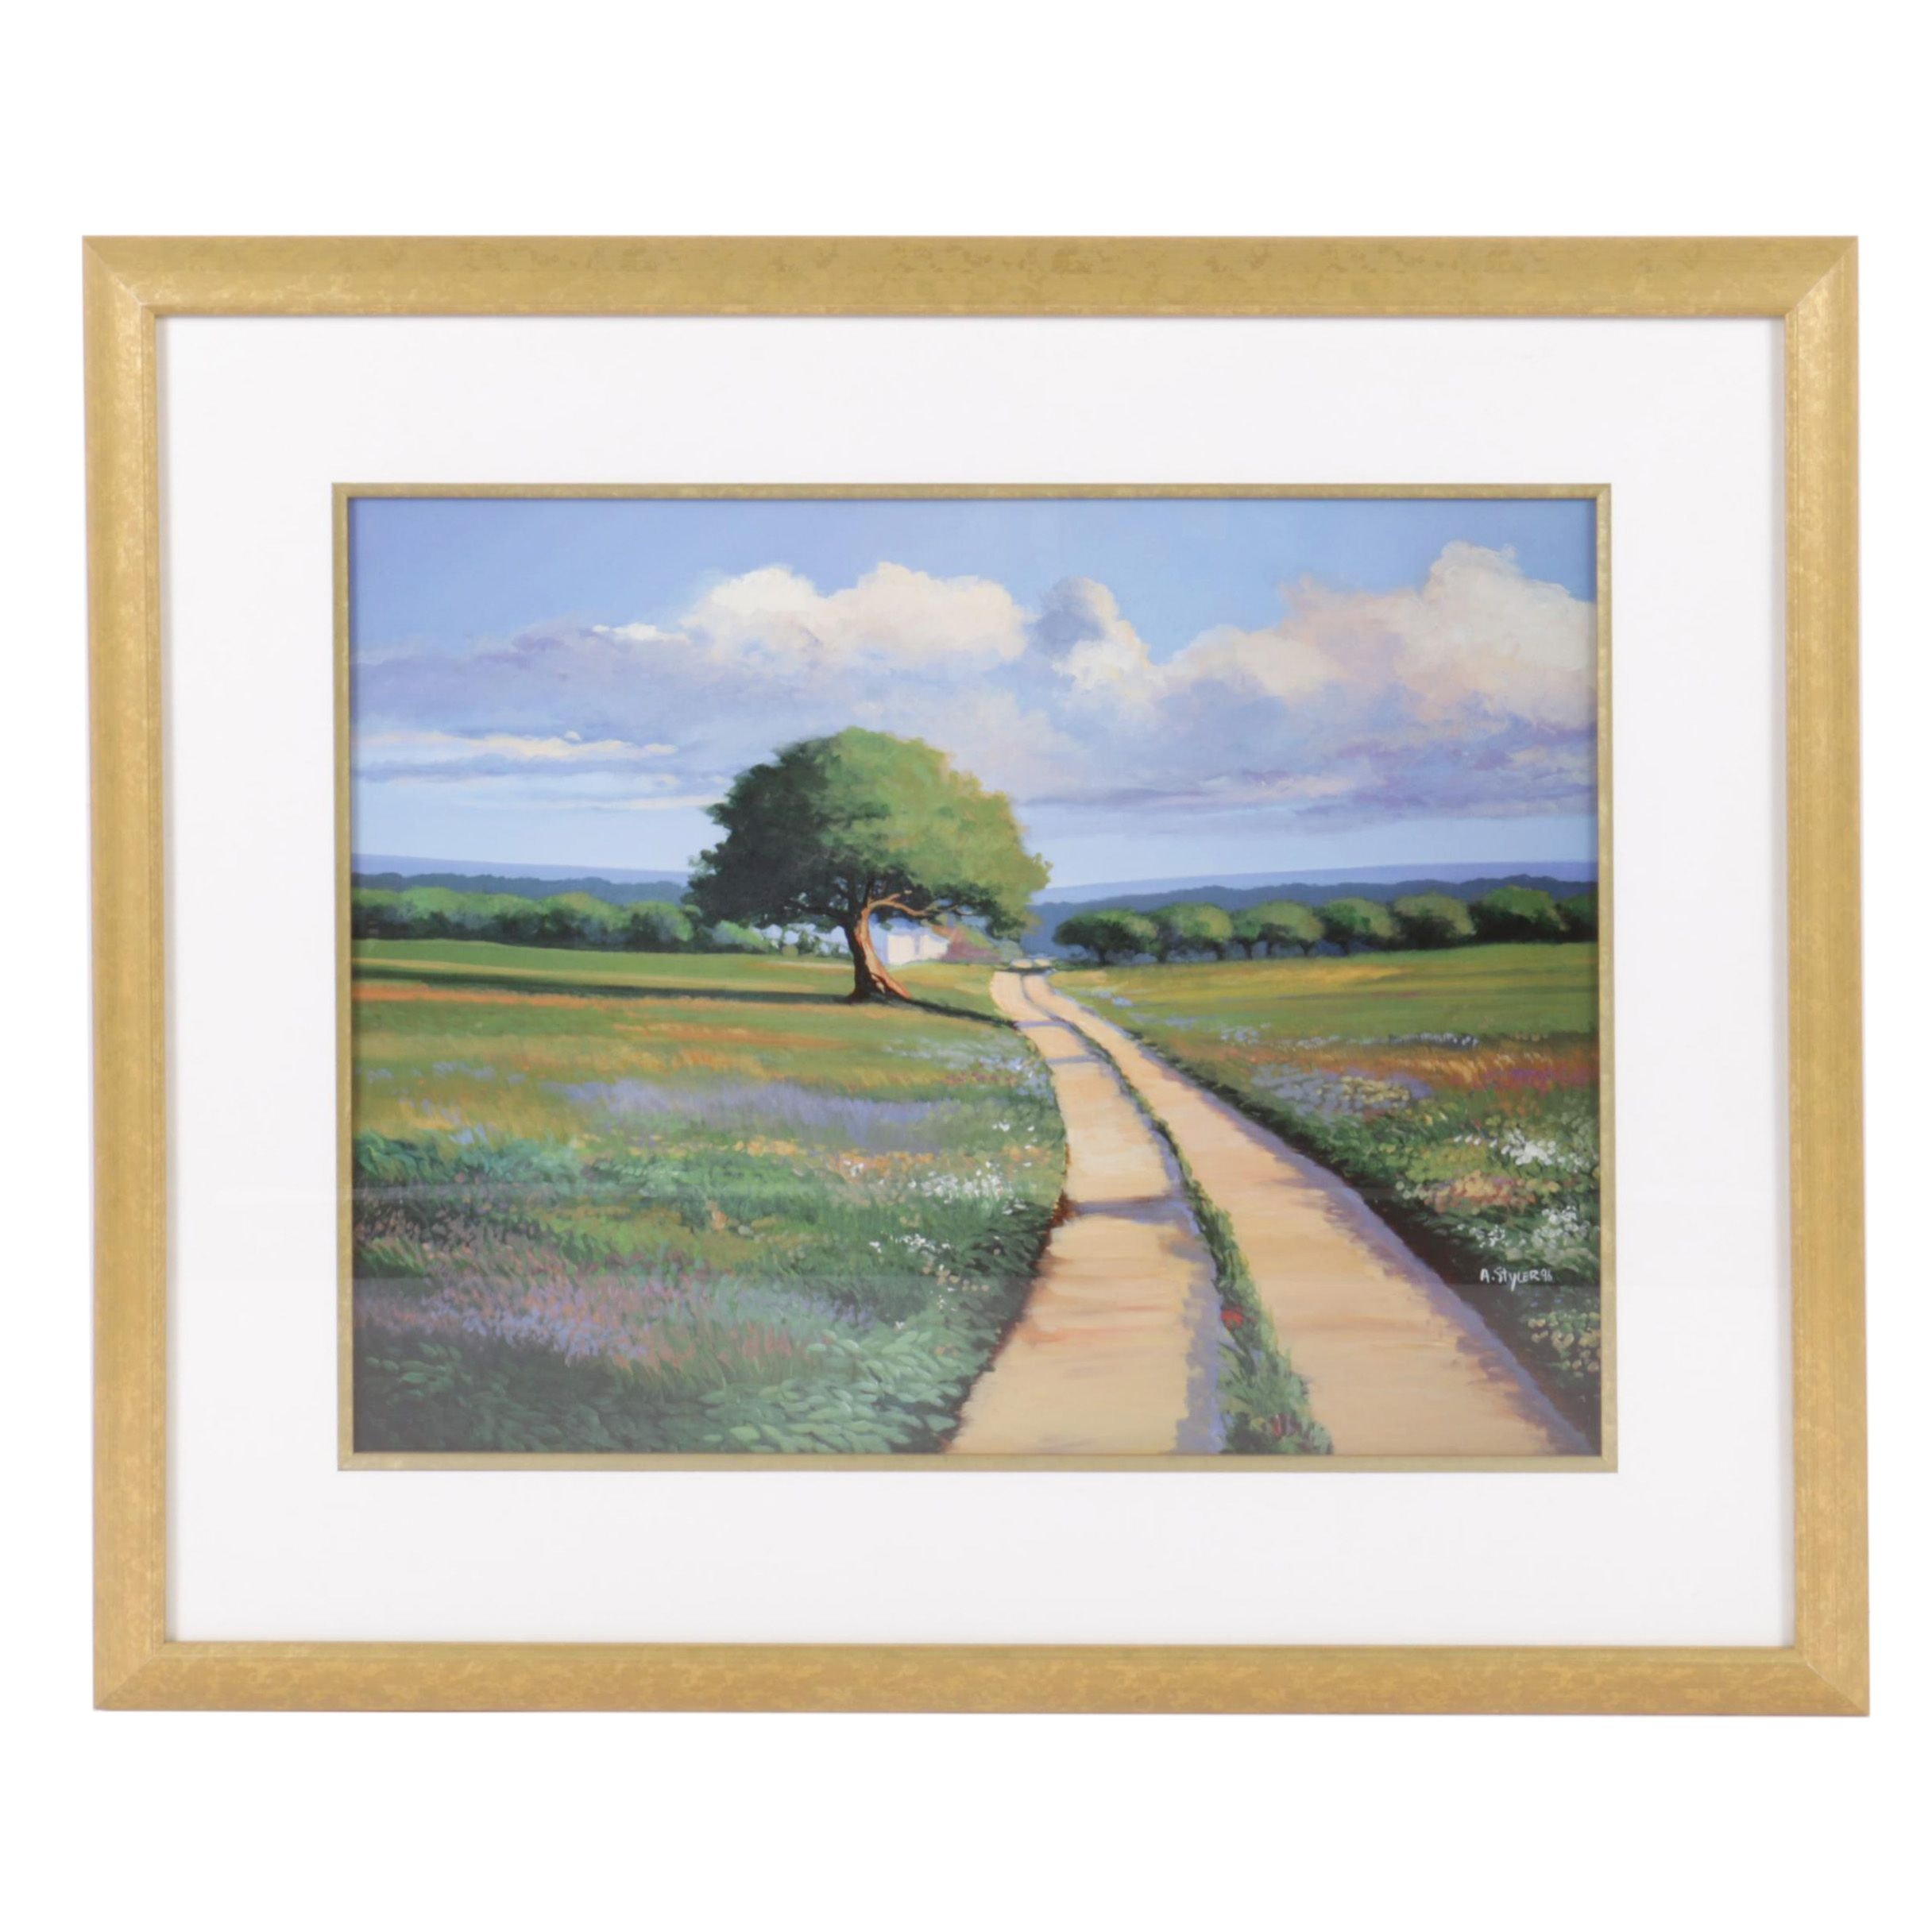 Anda Styler Reproduction Print of Countryside